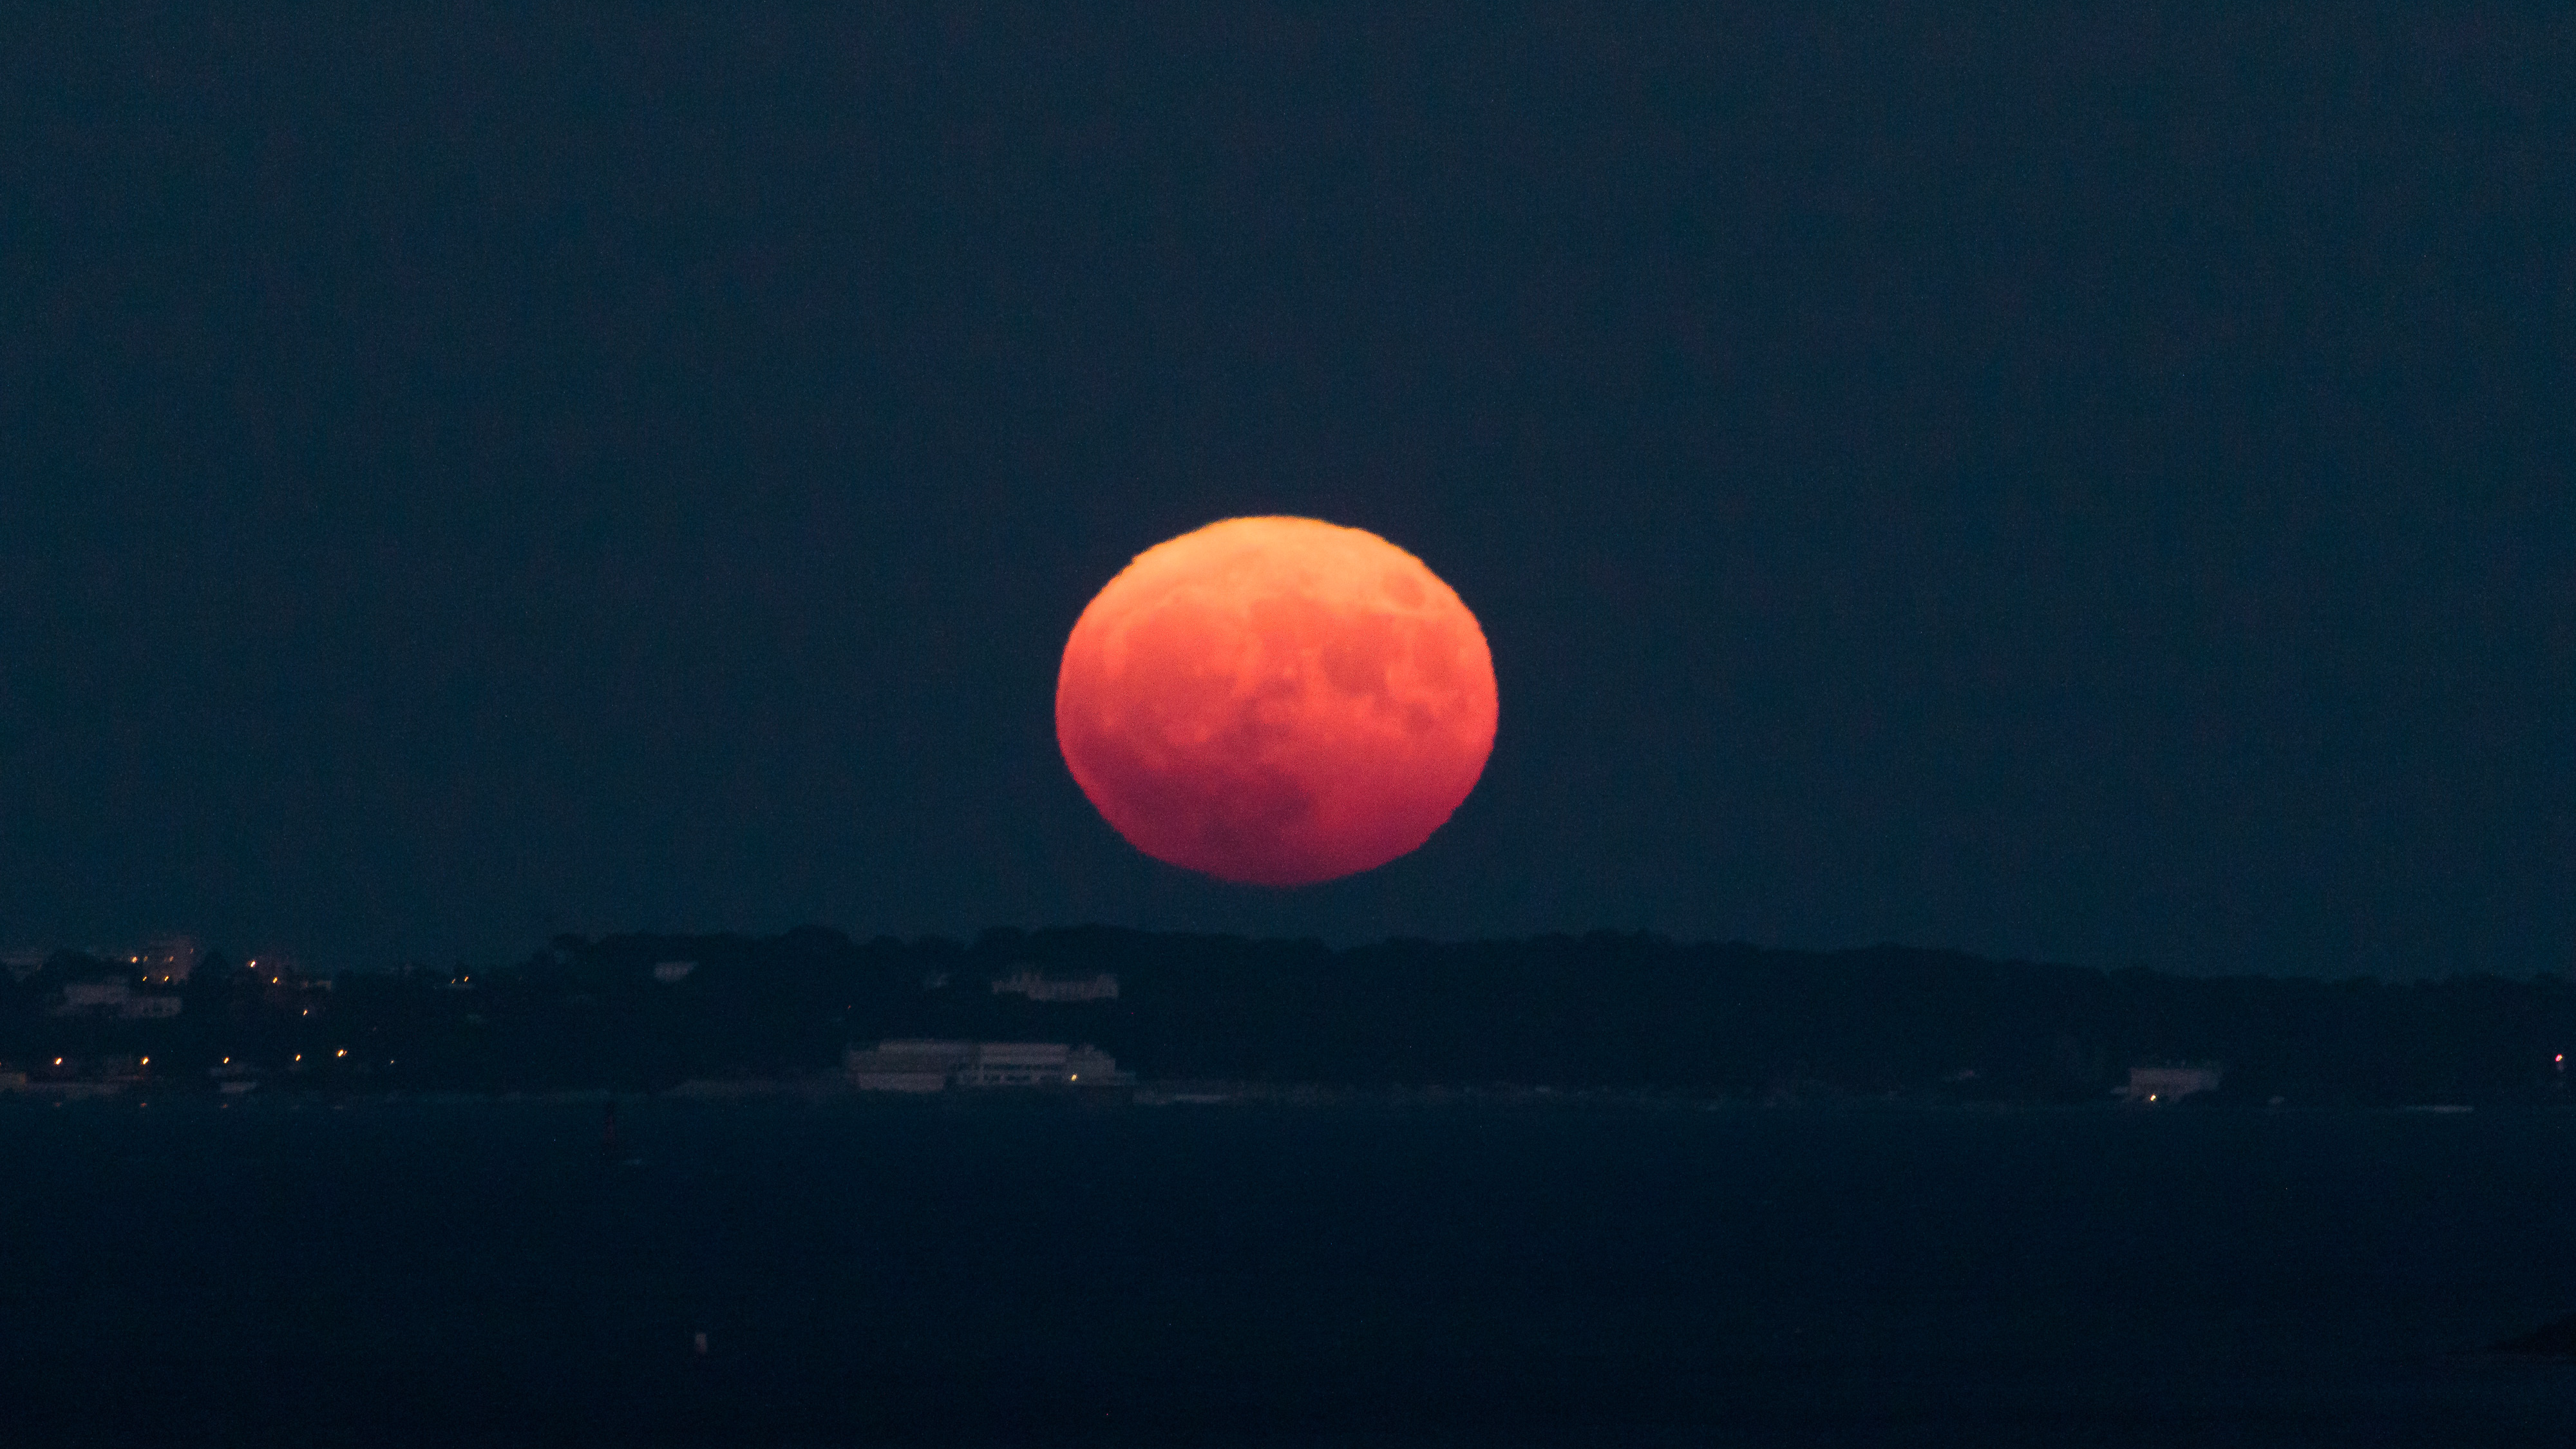 A Supermoon Is Expected To Be Bigger and Brighter Tonight